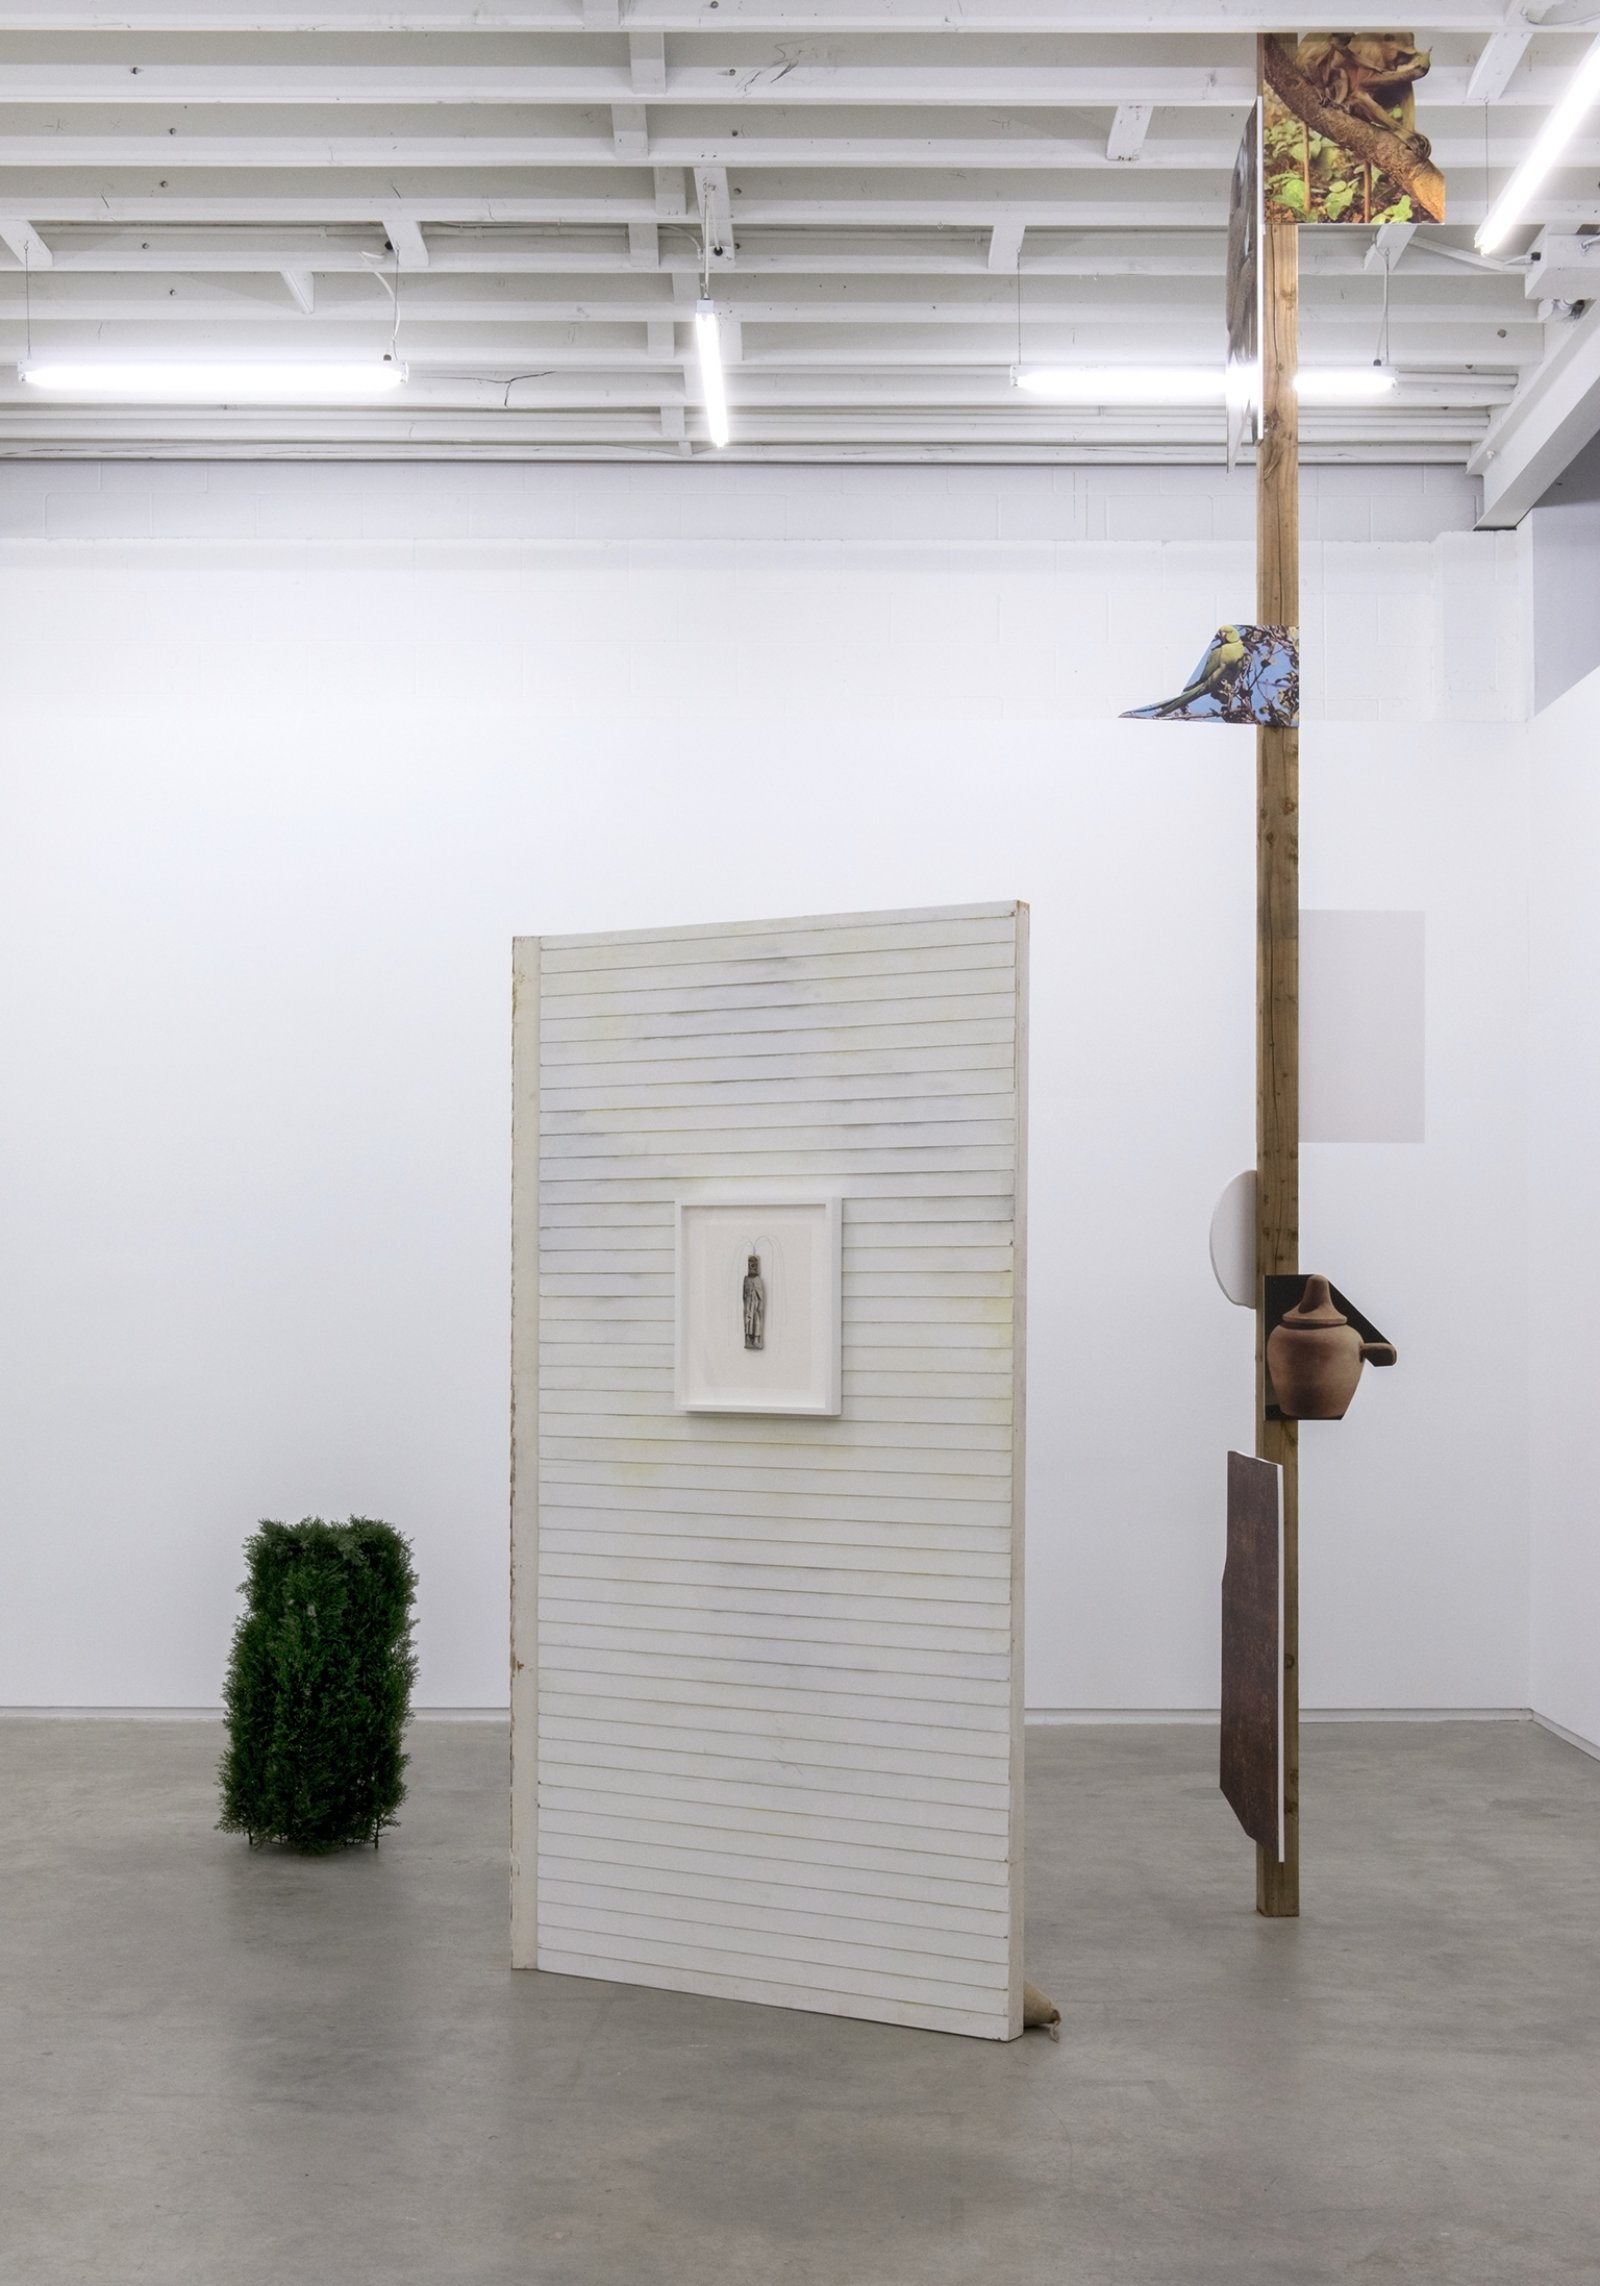 Geoffrey Farmer, This is where the plate goes..., 2014, douglas fir pole, 7 photographs mounted on foamcore, plastic topiary, 2 wooden wall façades, paint, window, sandbags, framed ink and cut-outs mounted on paper, dimensions variable by Geoffrey Farmer